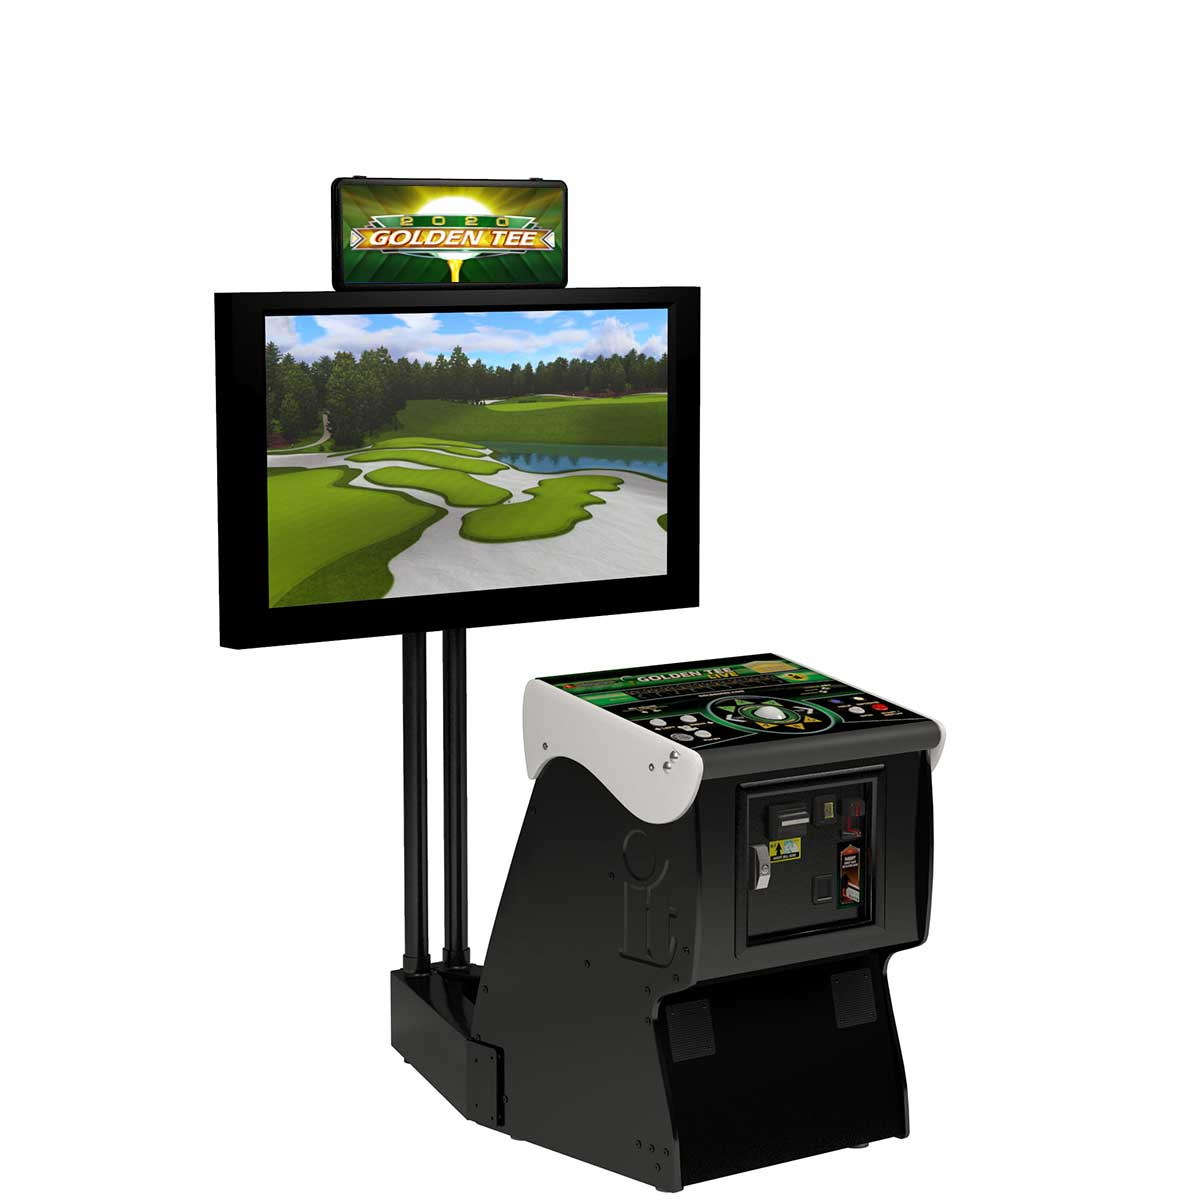 Why Golden Tee is the Best line of Acade Games On the Market